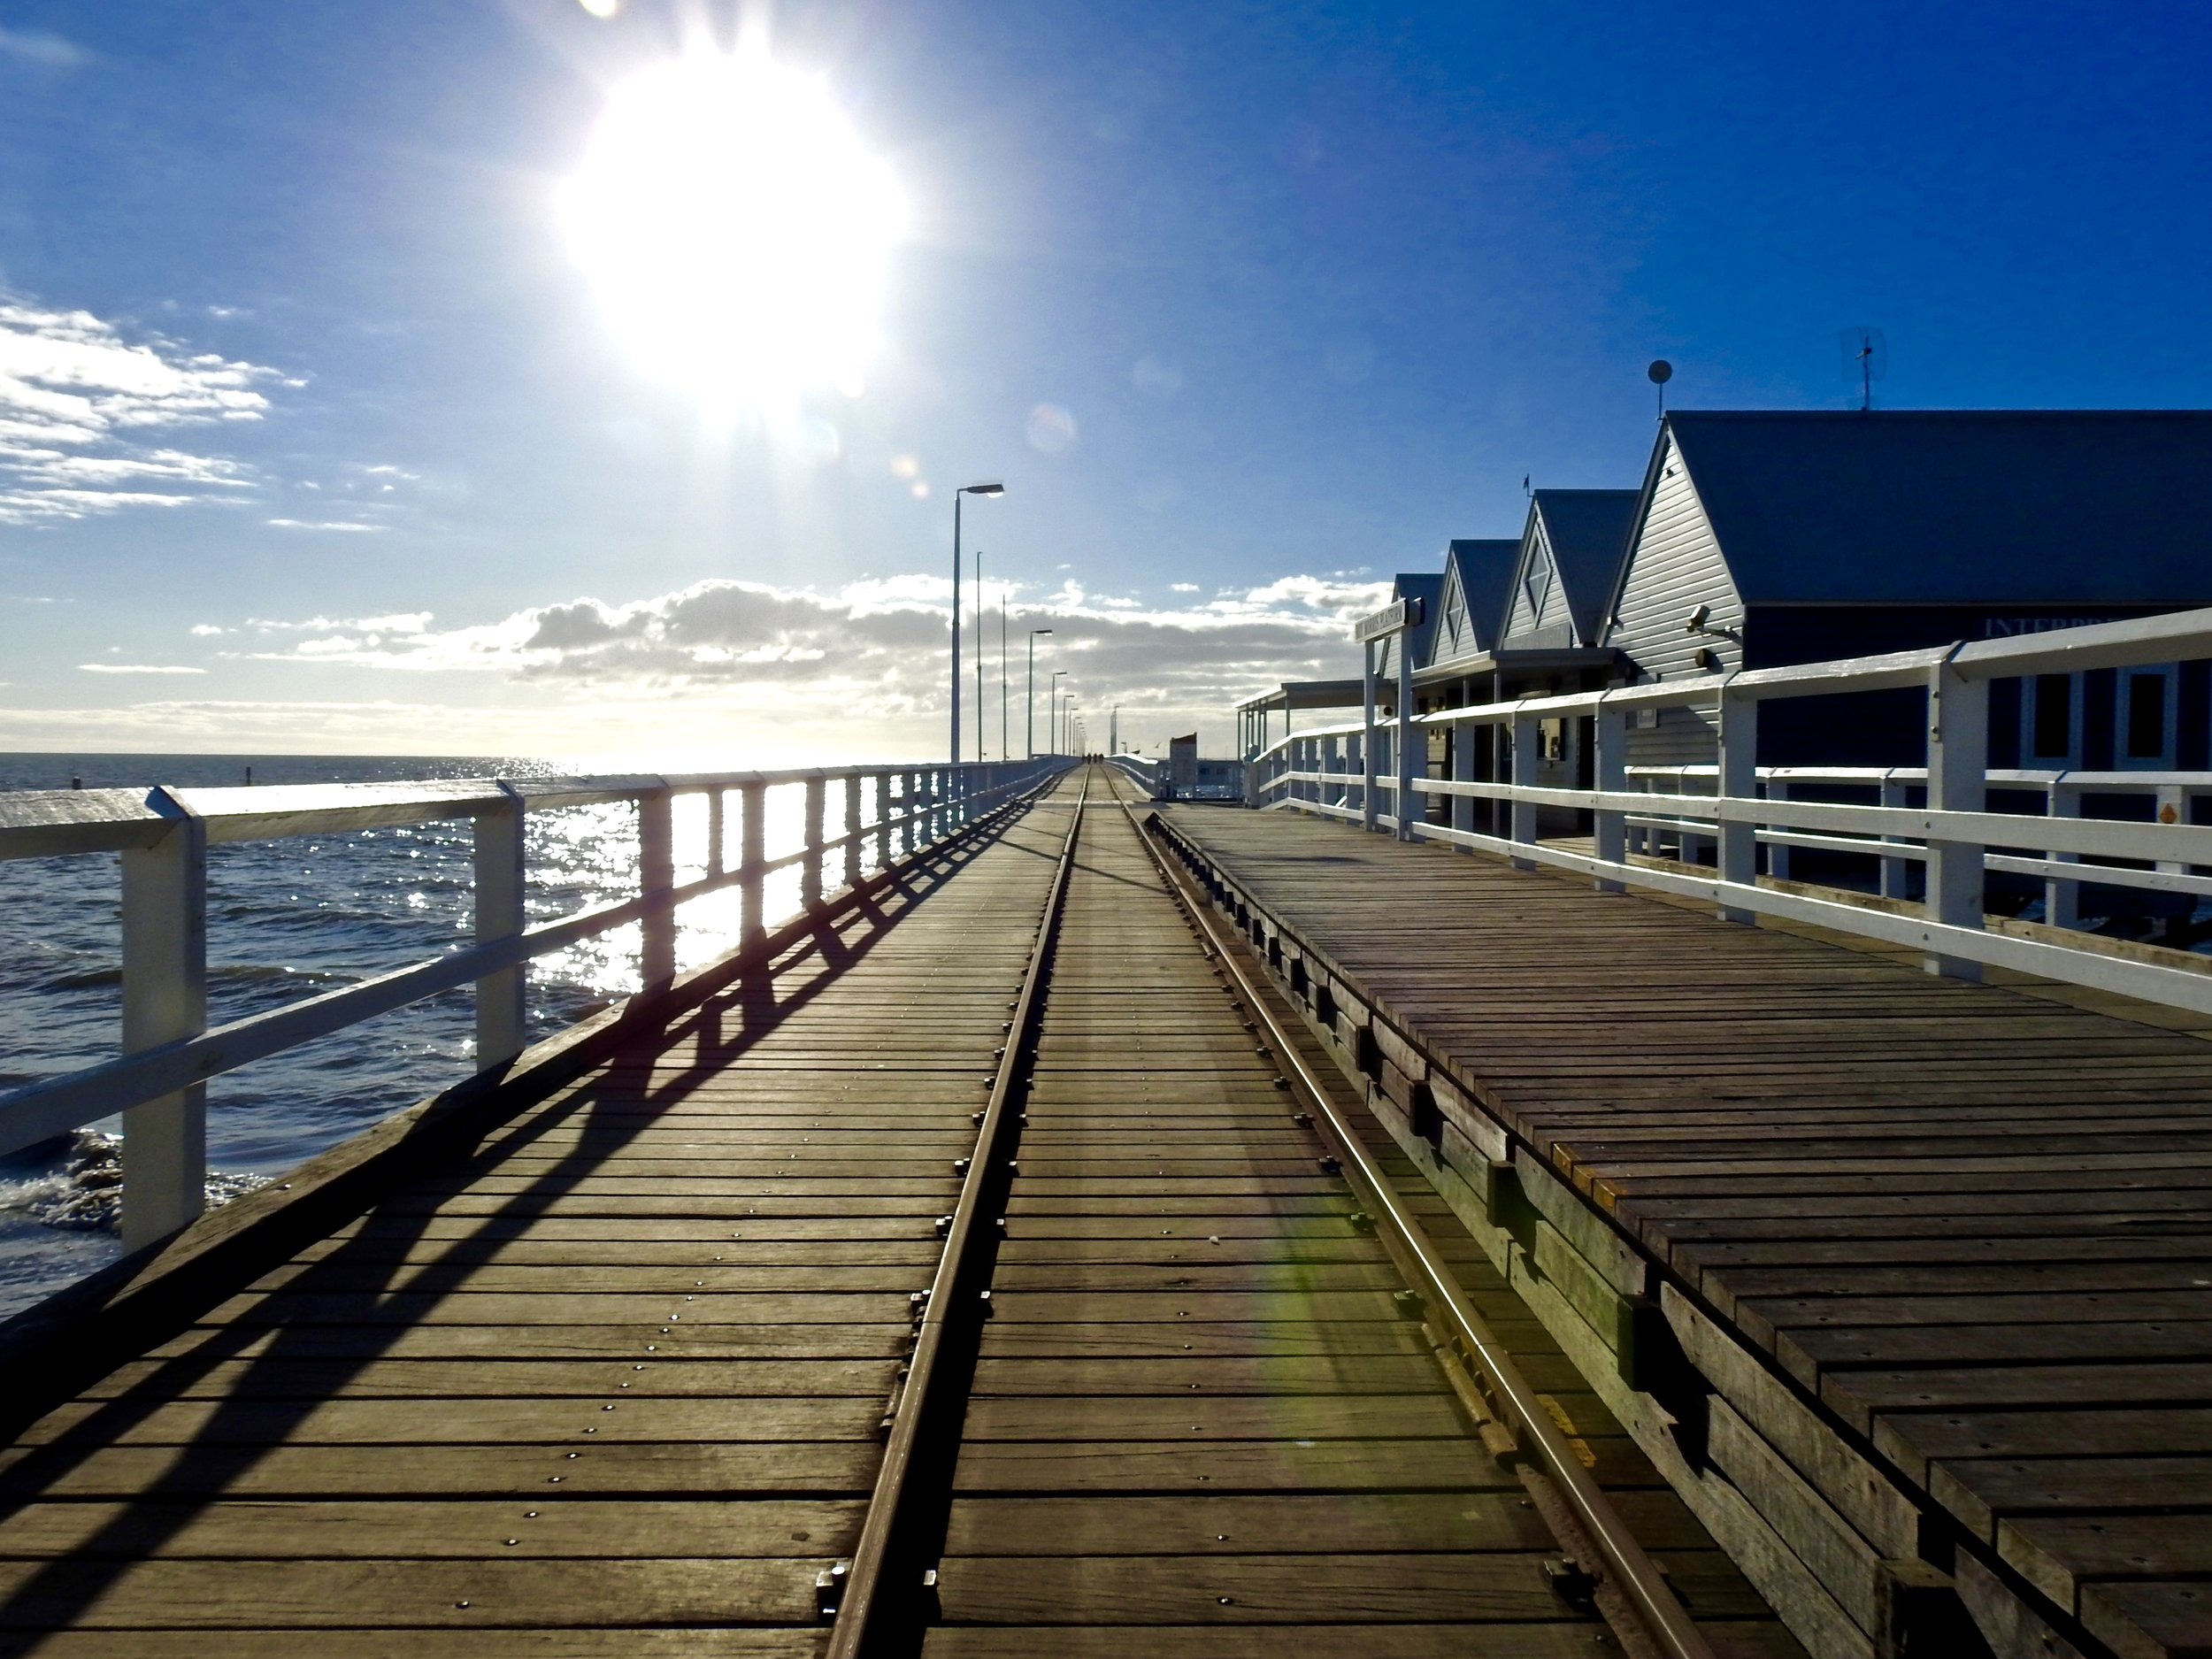 The Busselton Jetty and Railway that takes you to the underwater observatory.